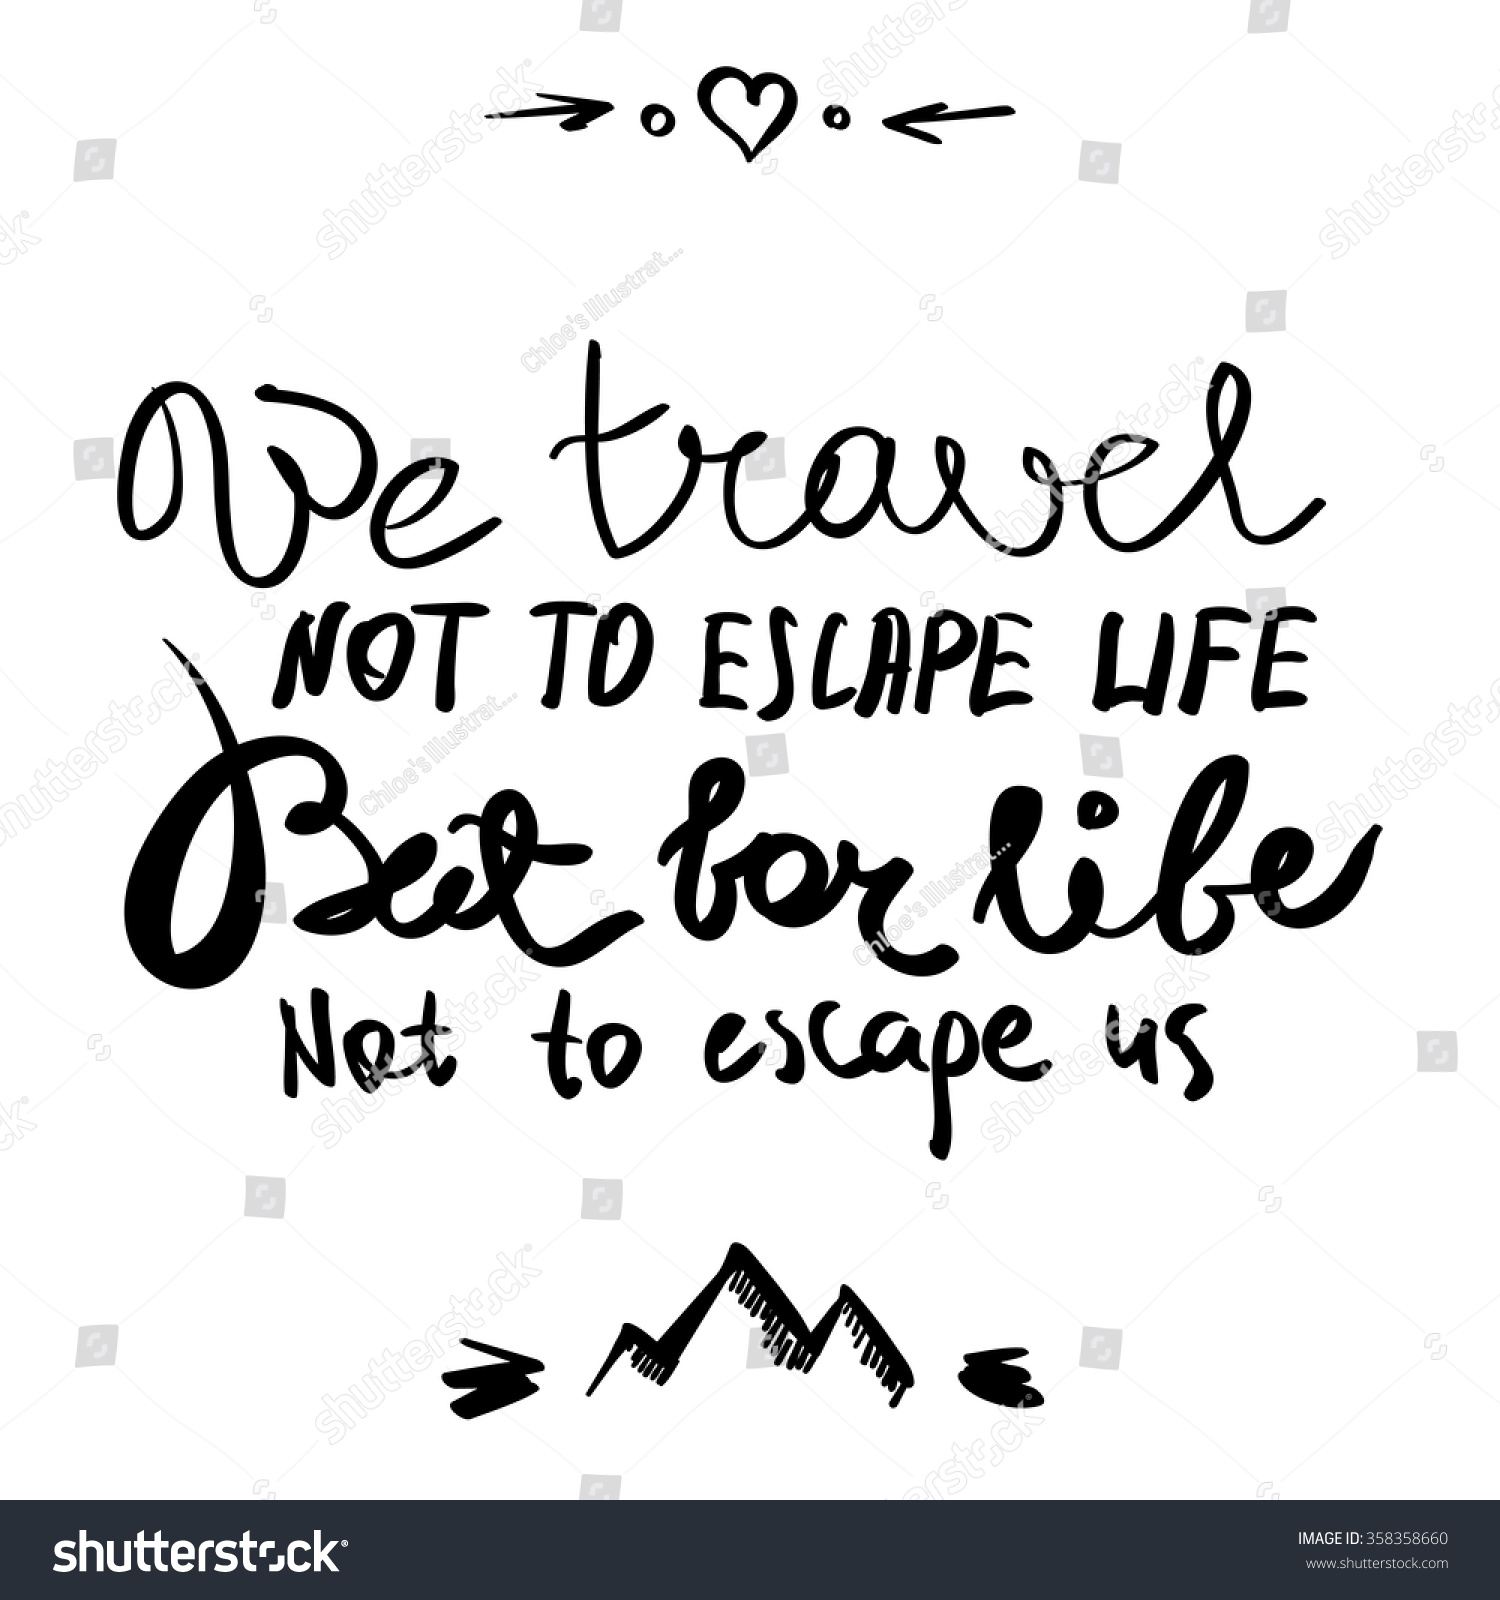 stock-vector-we-travel-not-to-escape-lif